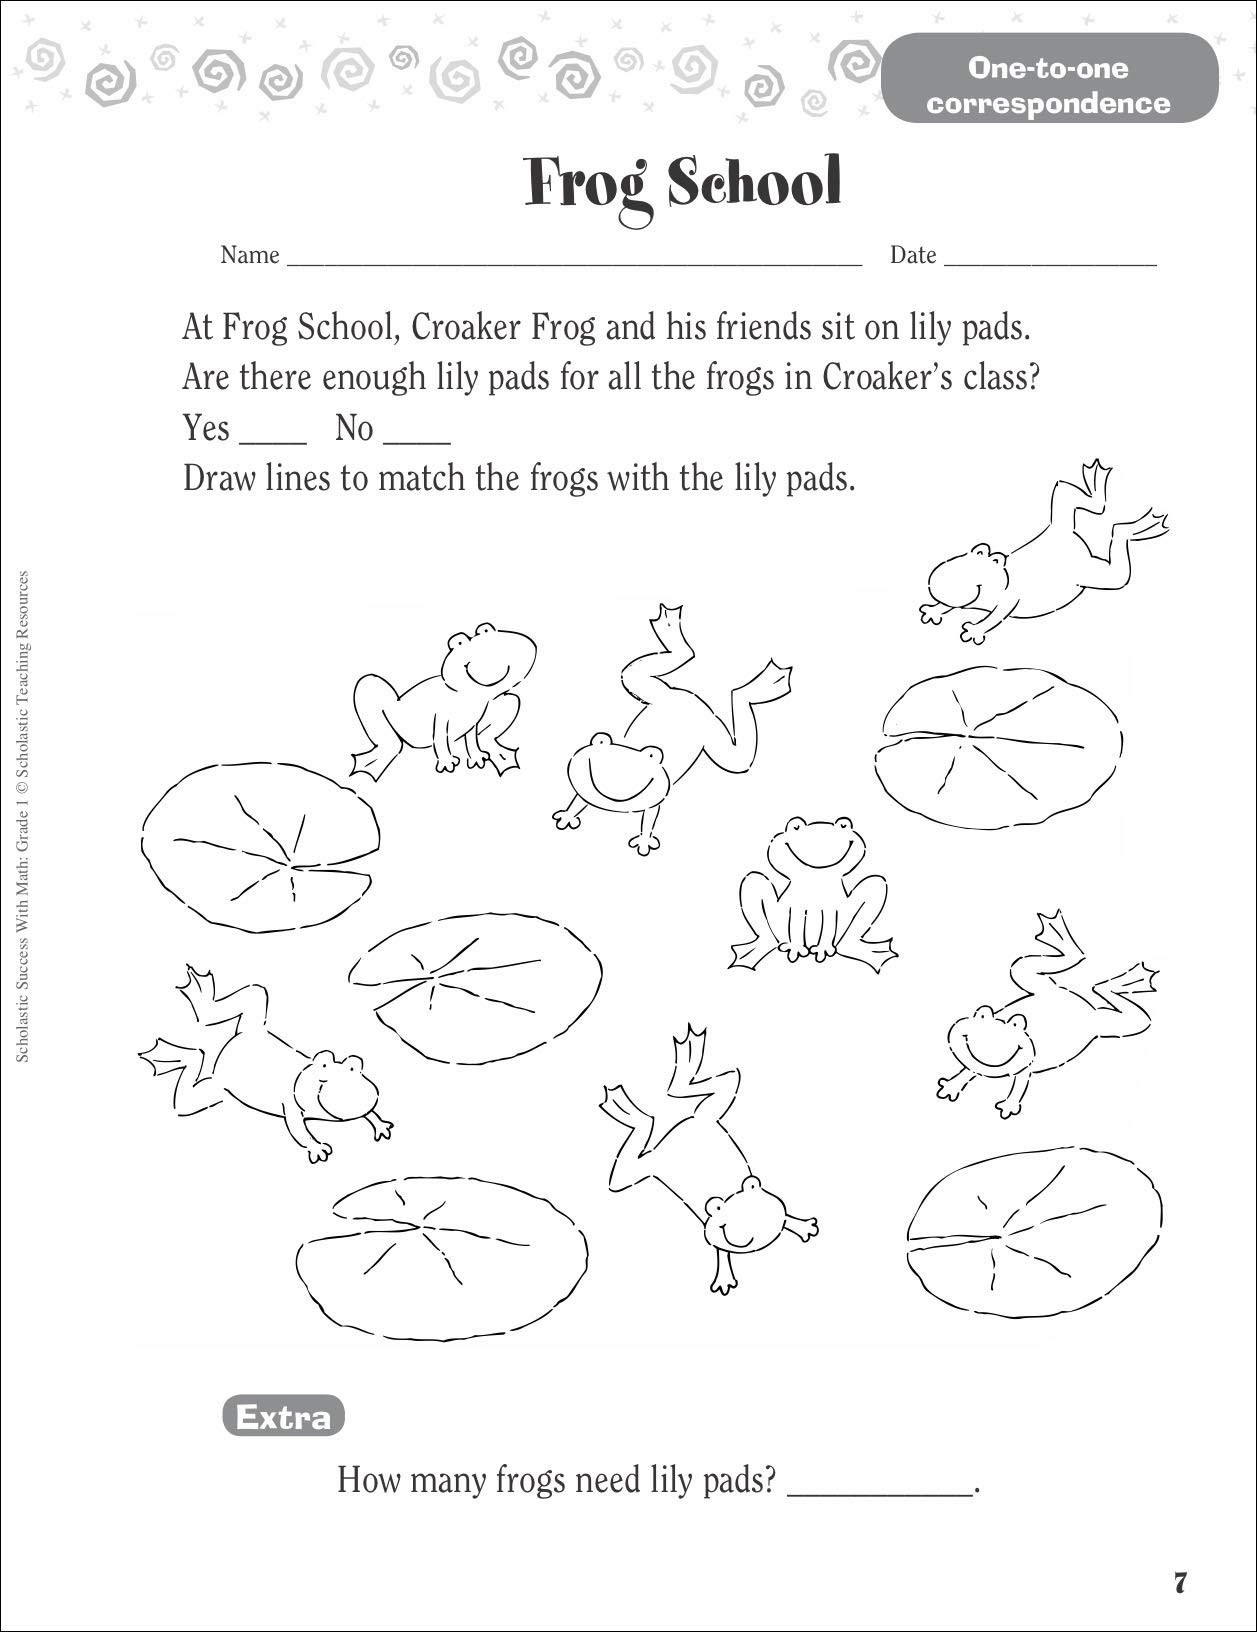 Comma Worksheet Middle School Pdf Local Tutoring Services Free 3d Shapes Worksheets Ma